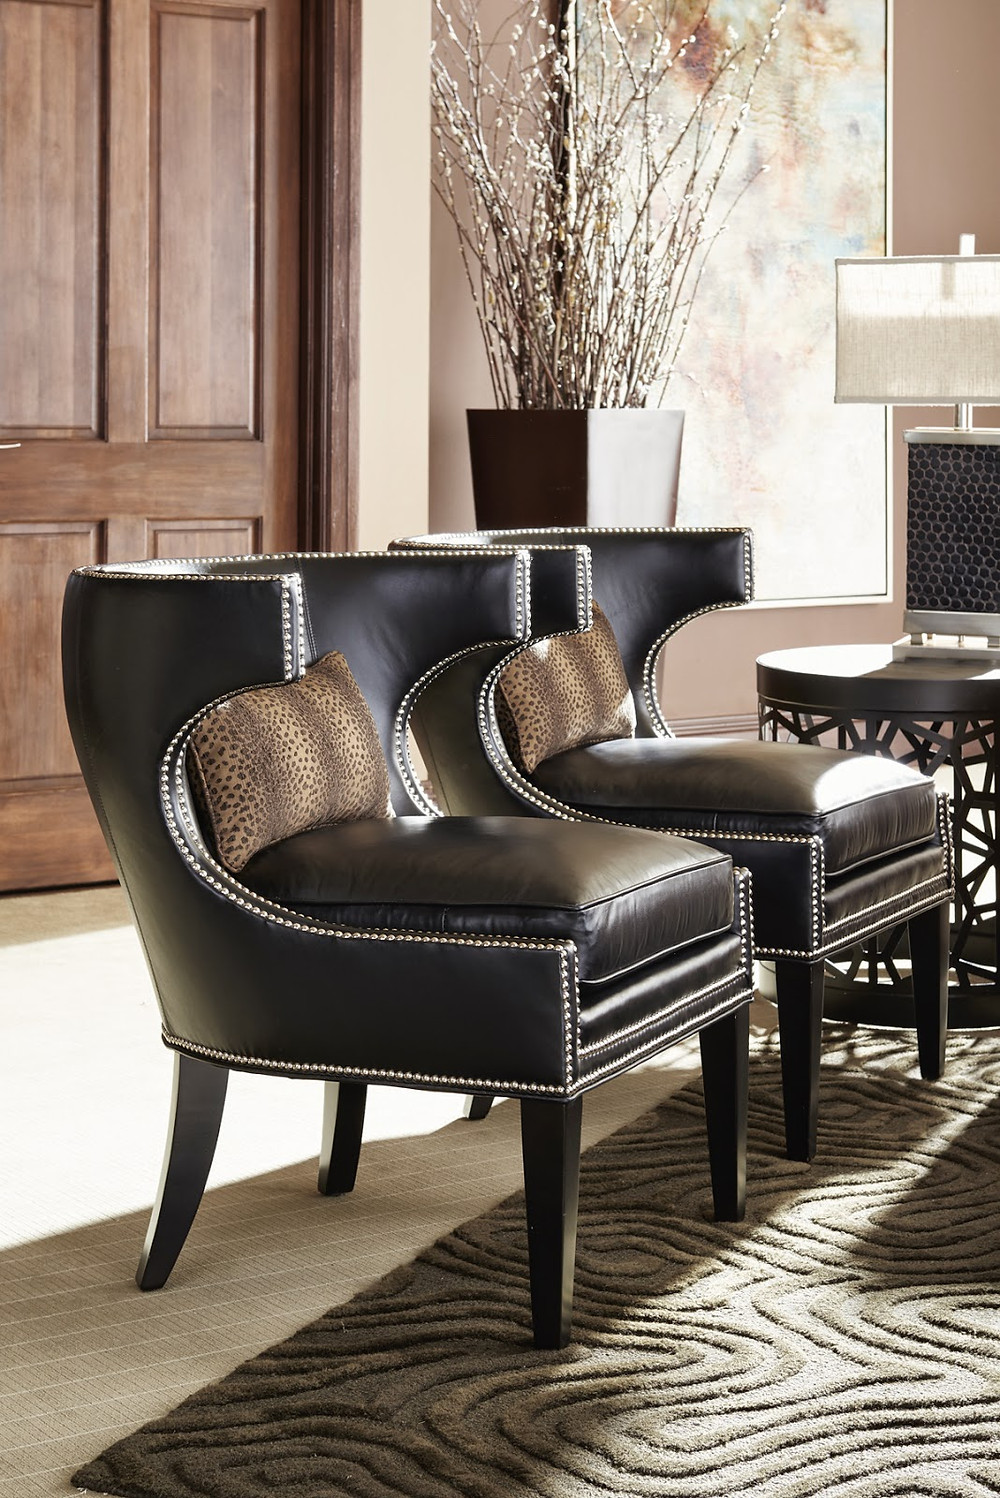 where can if find sleek elegant modern leather chairs with leopard pillows in san mateo san jose cupertino